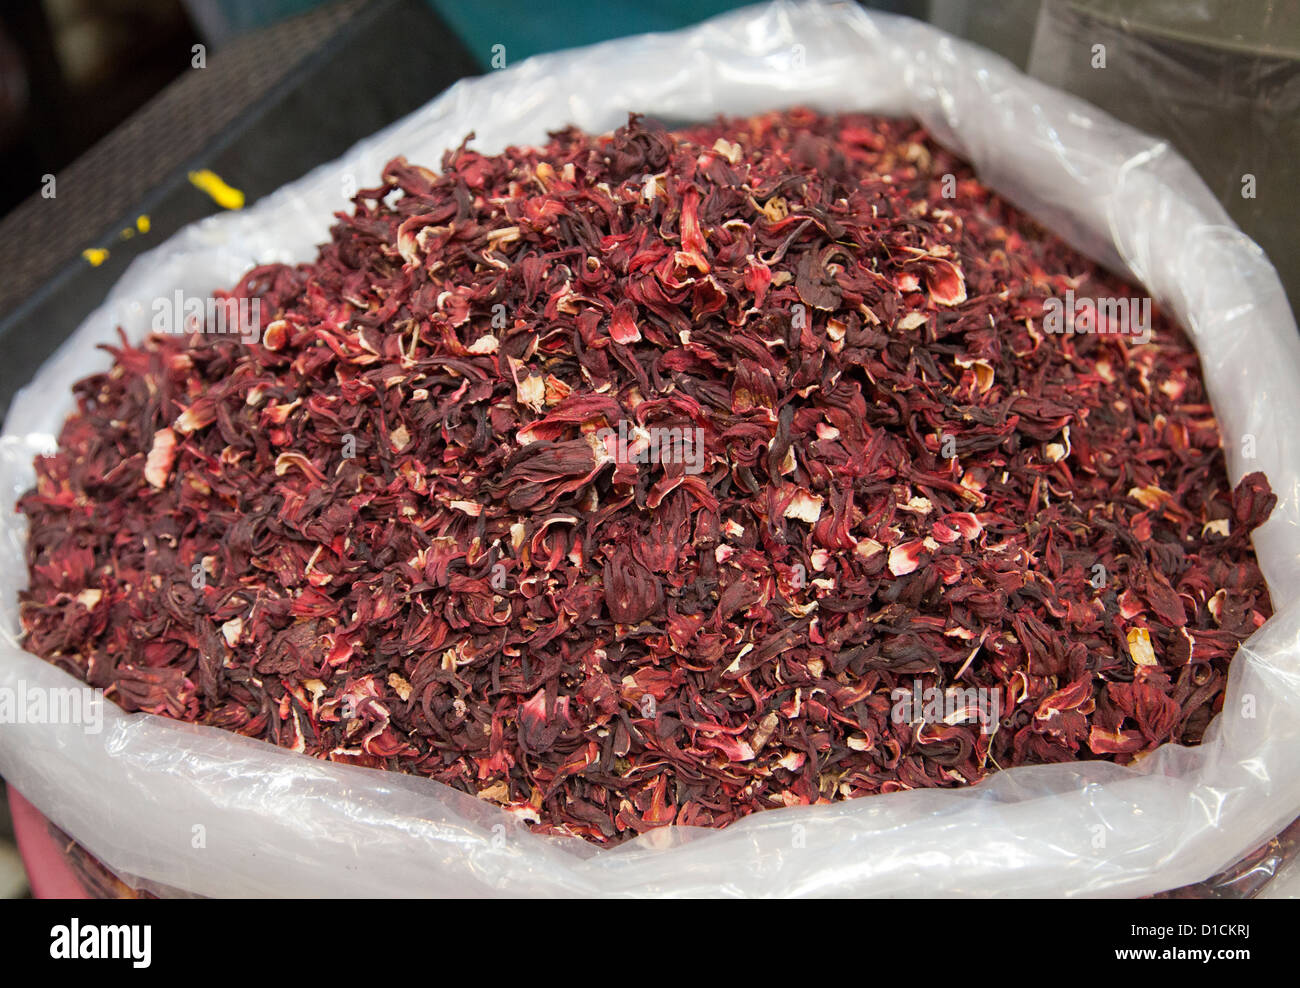 Bag Of Dried Hibiscus Or Jamaica Flower Petals Xochimilco